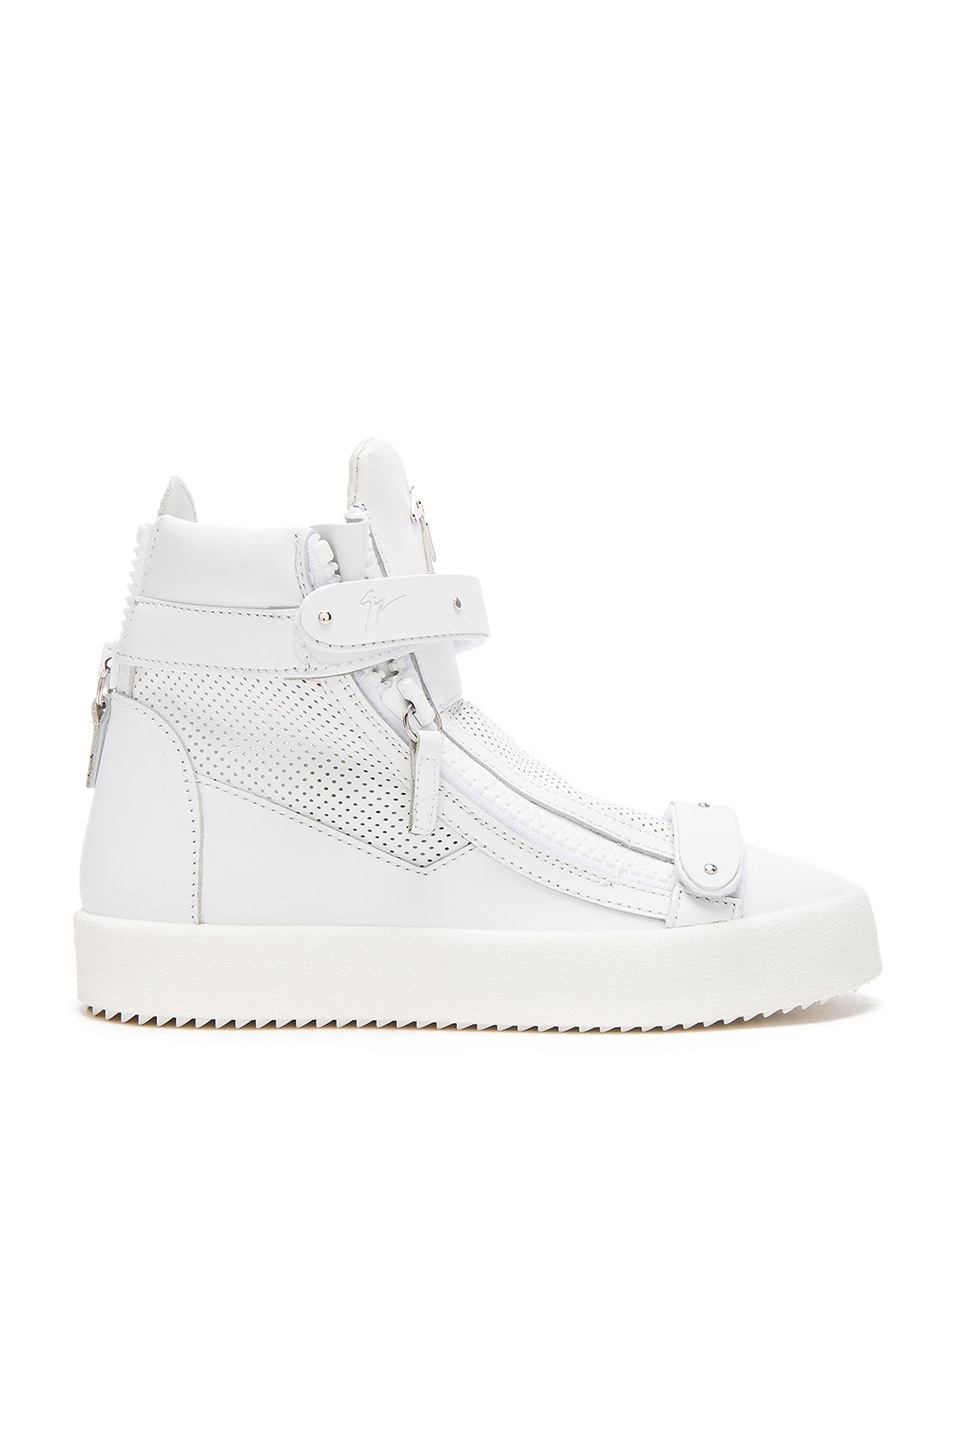 Image 1 of Giuseppe Zanotti Perforated Leather High Top Sneakers in White